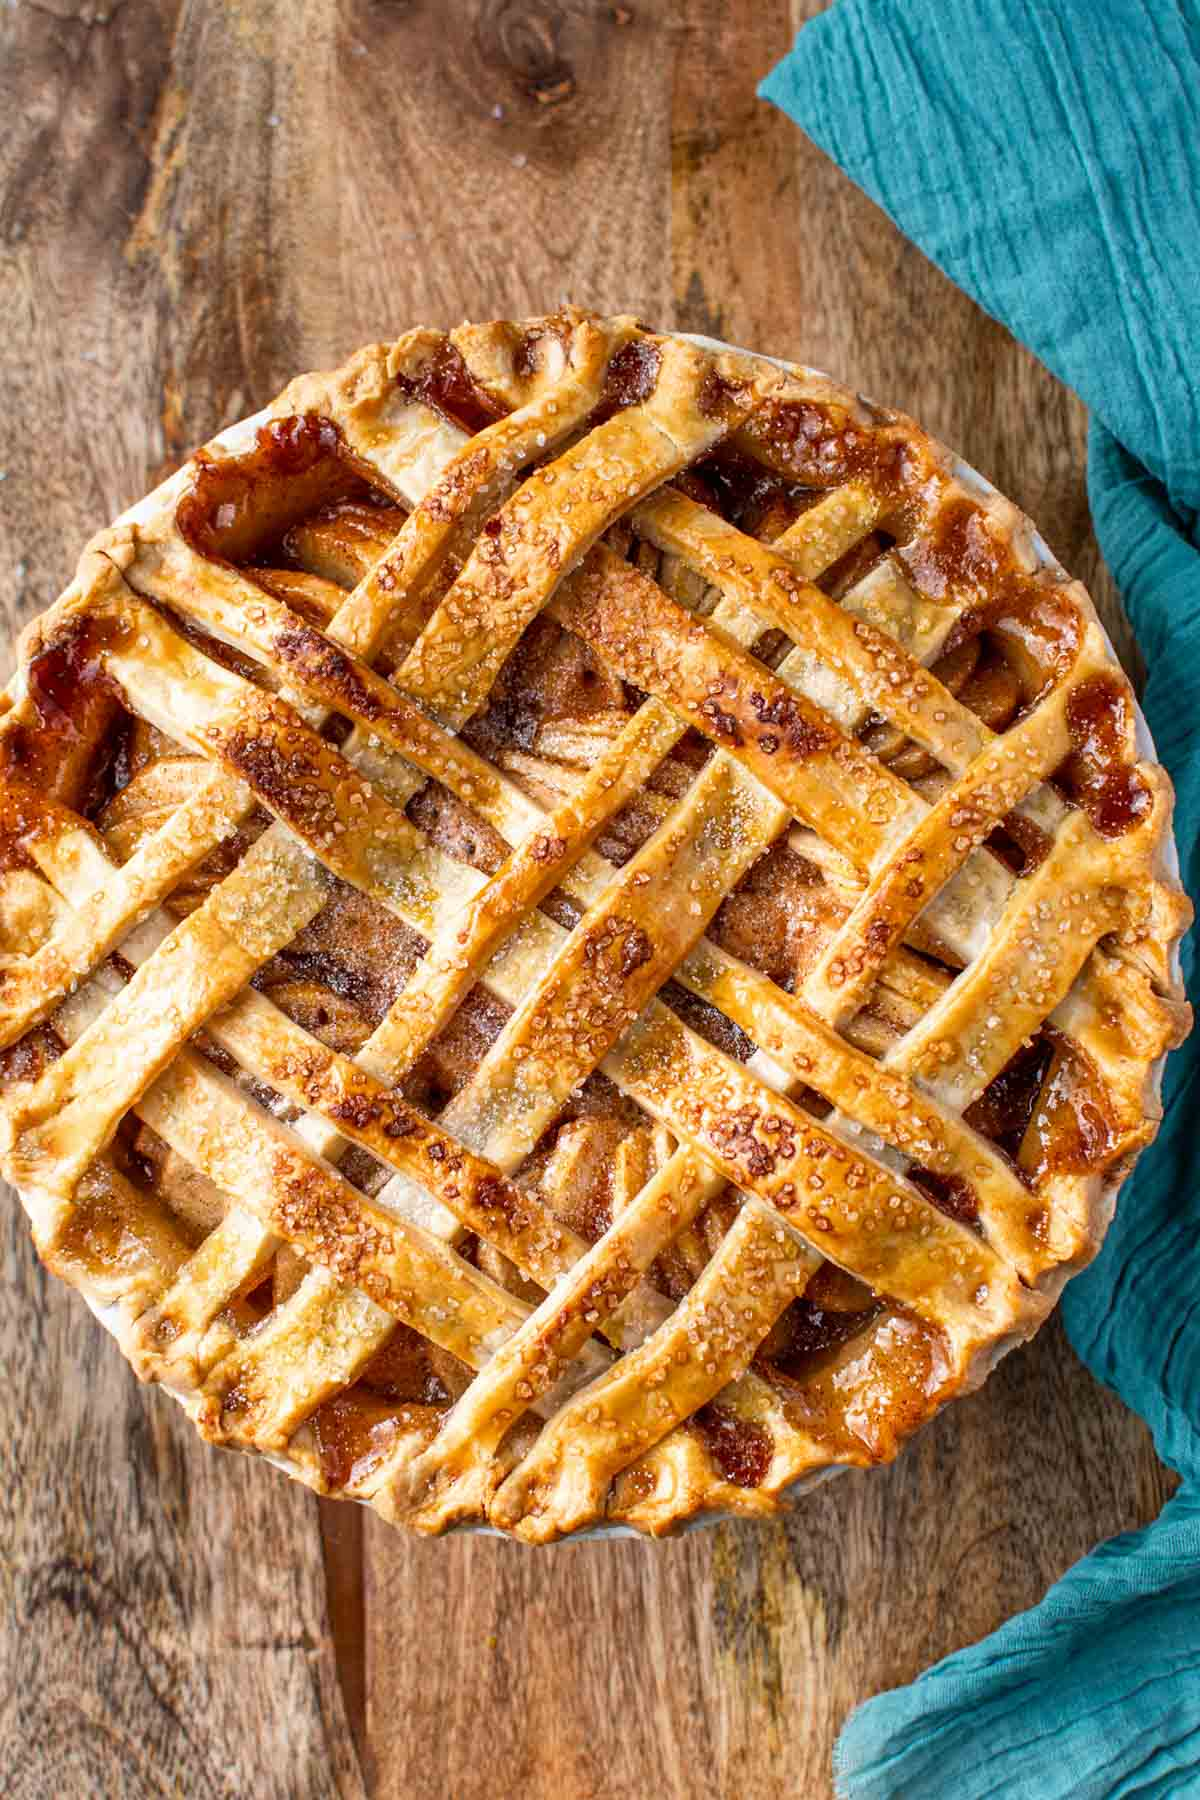 Top photo of a baked homemade apple pie